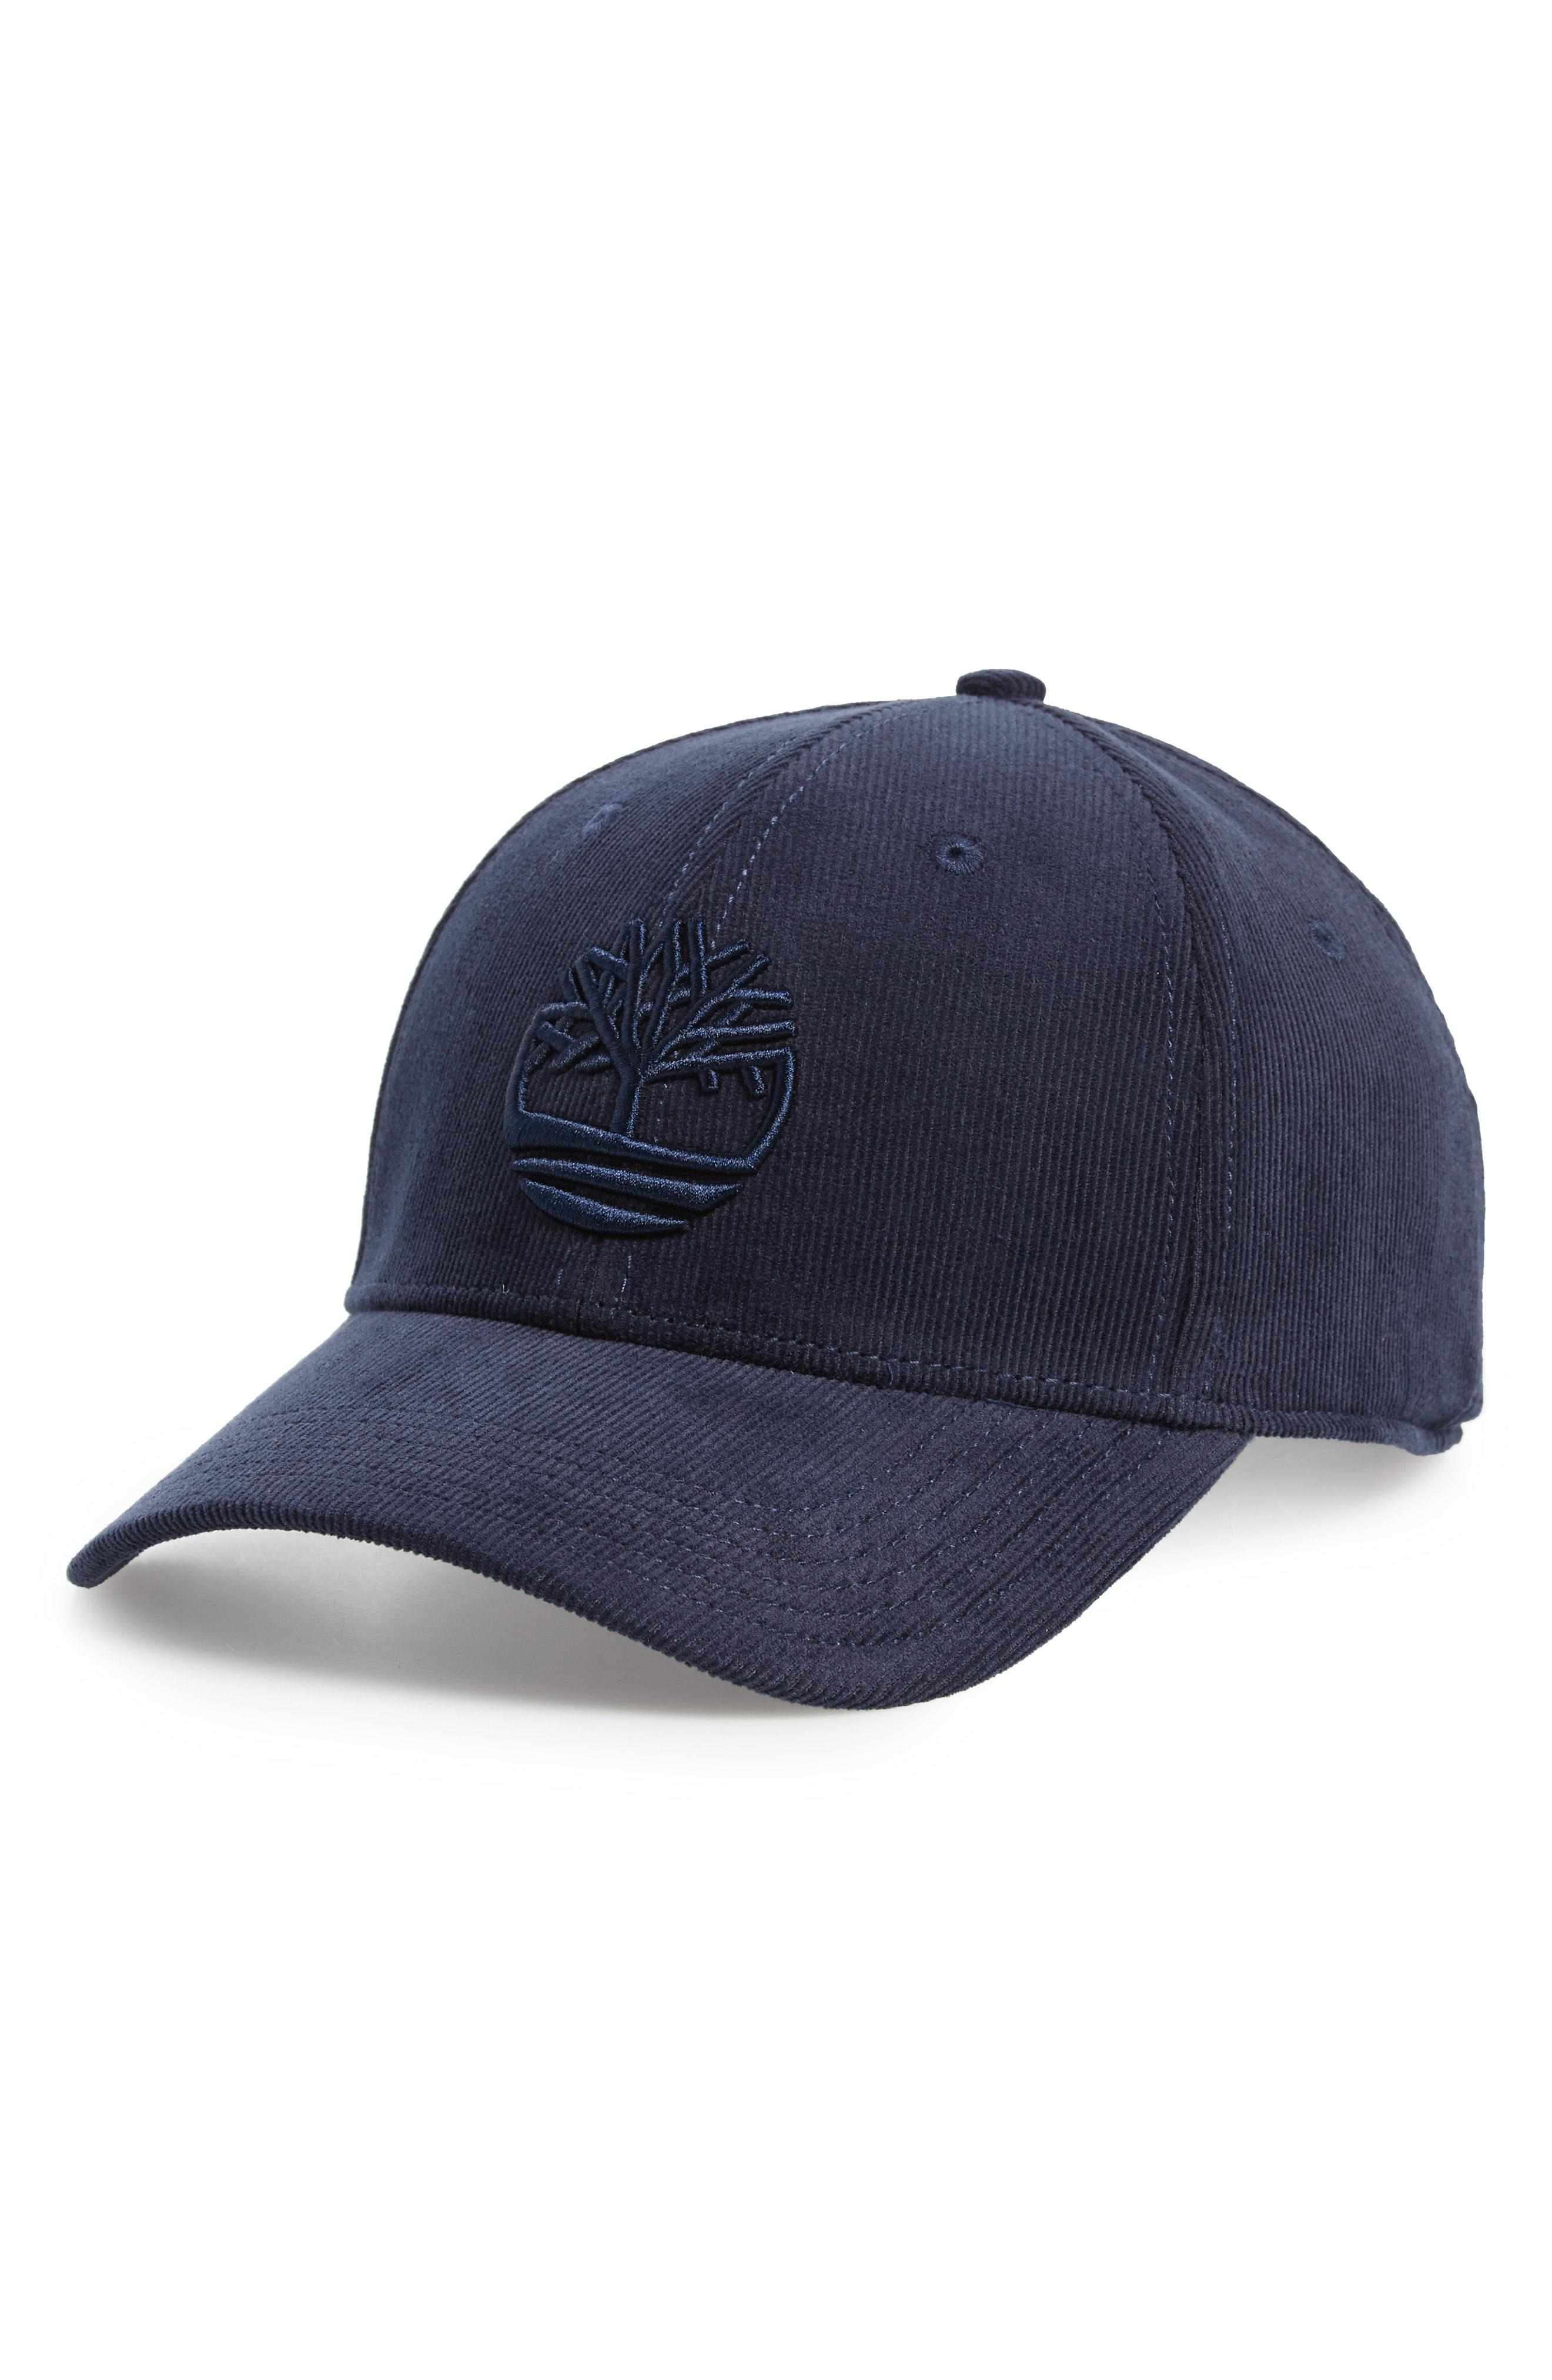 Lyst - Timberland Logo Embroidered Corduroy Ball Cap - in Blue for Men 947325719b8